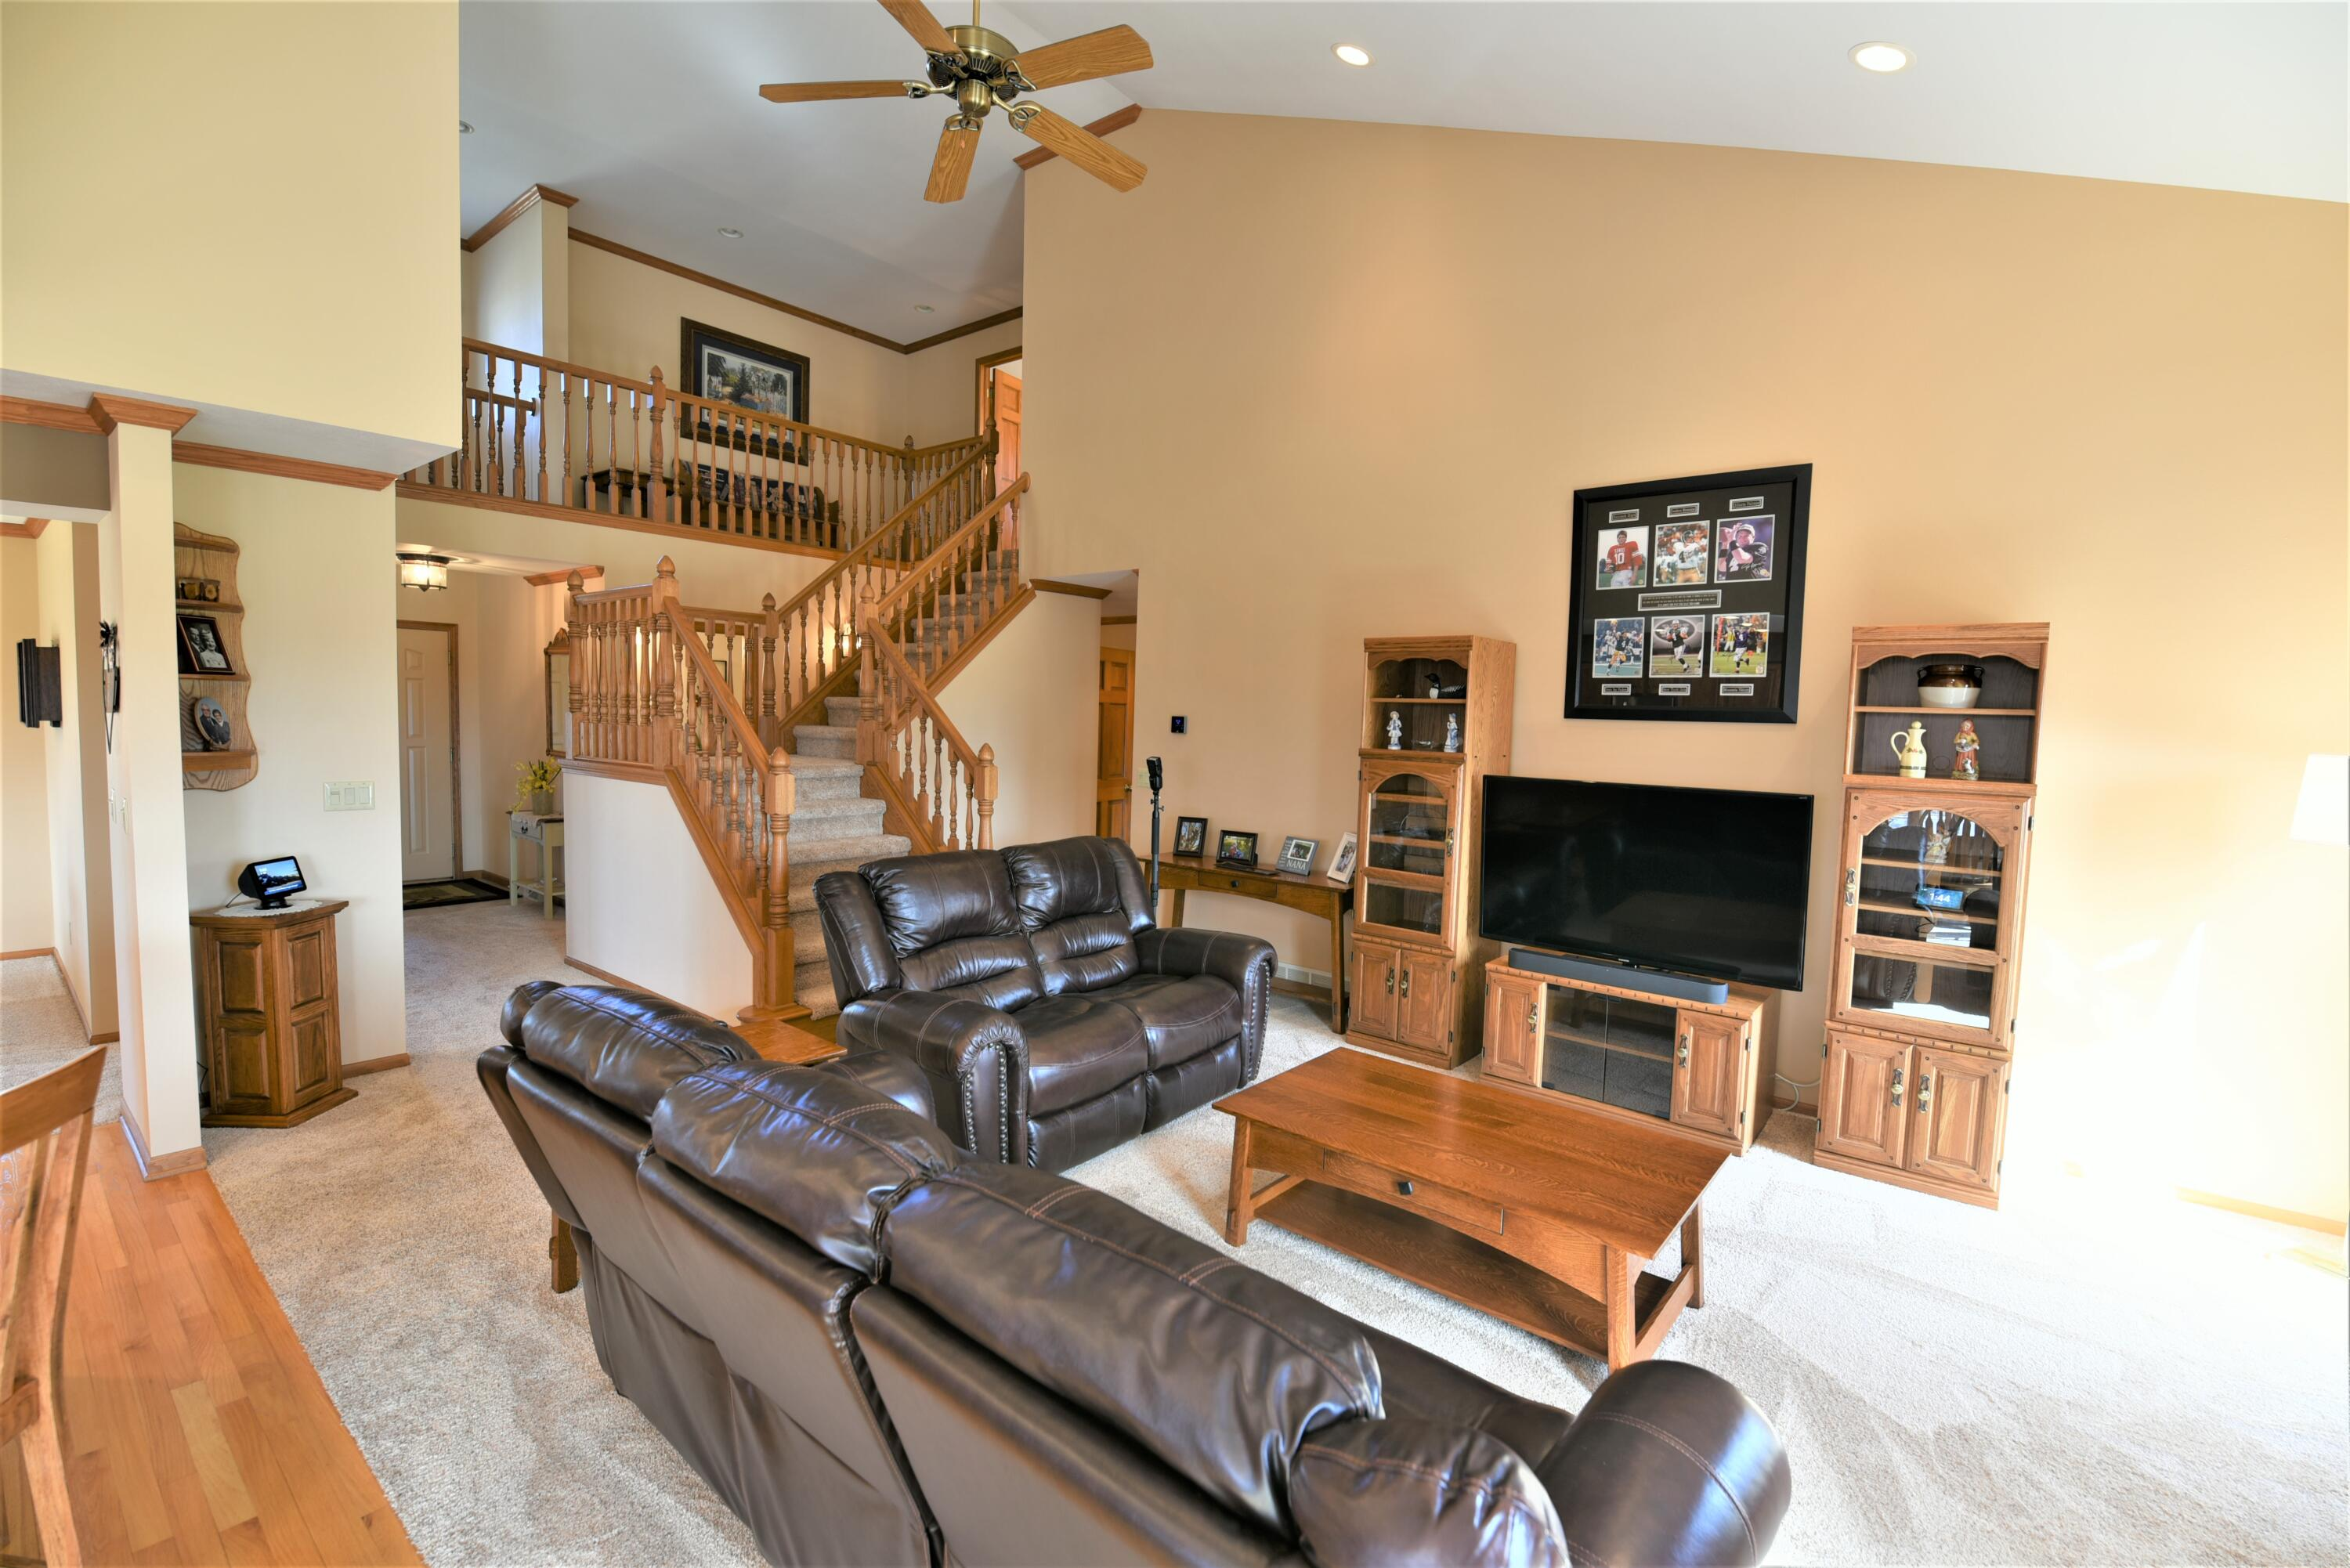 Living room staircase view